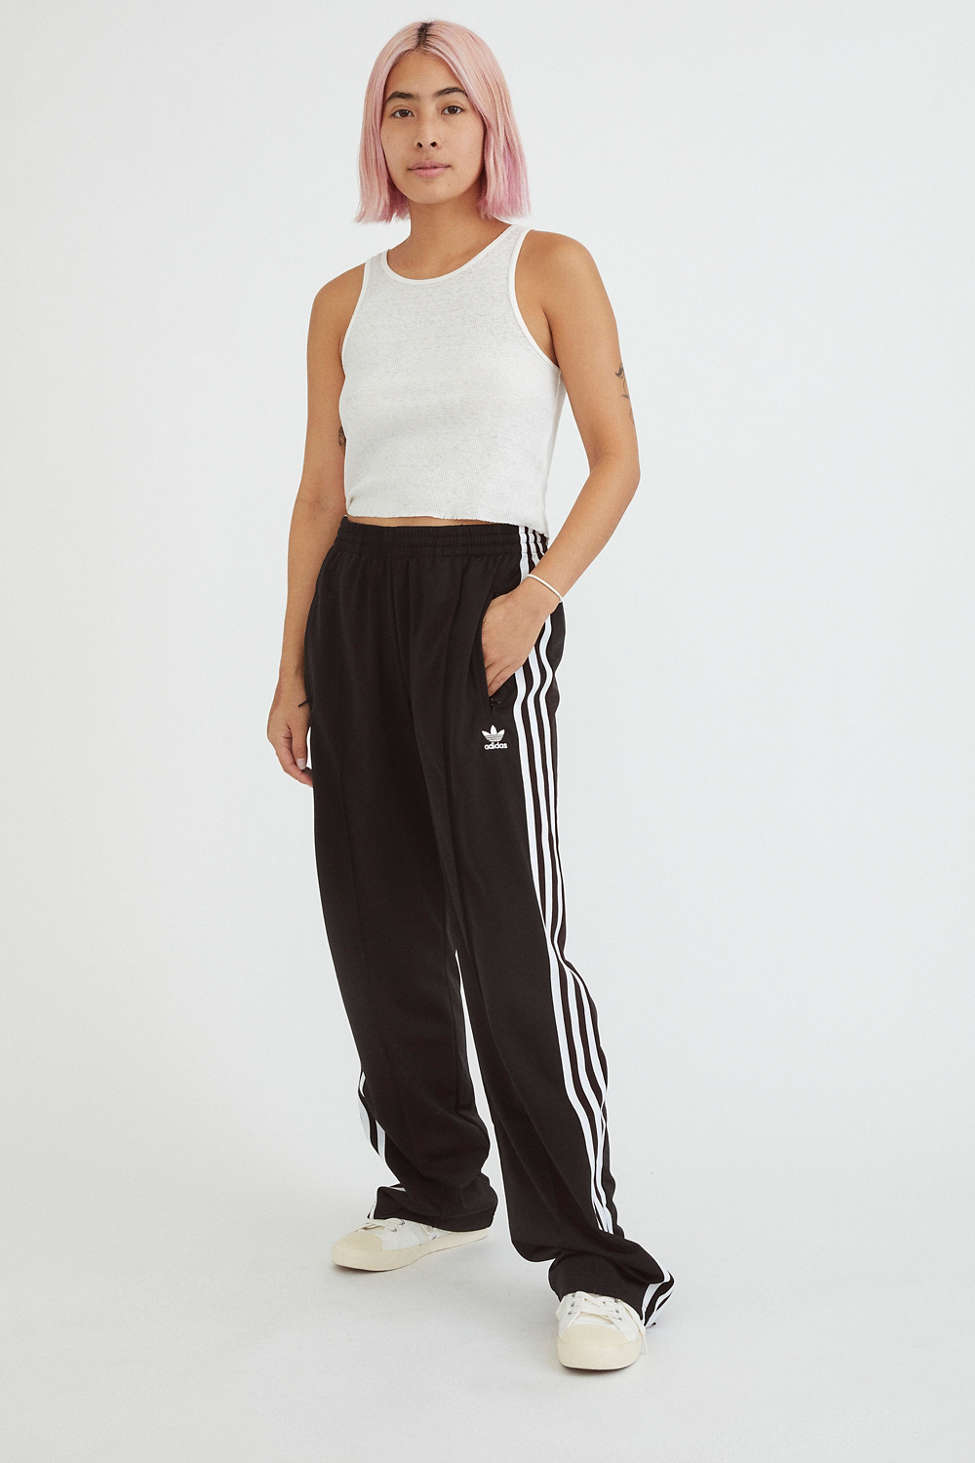 adidas fire track pant